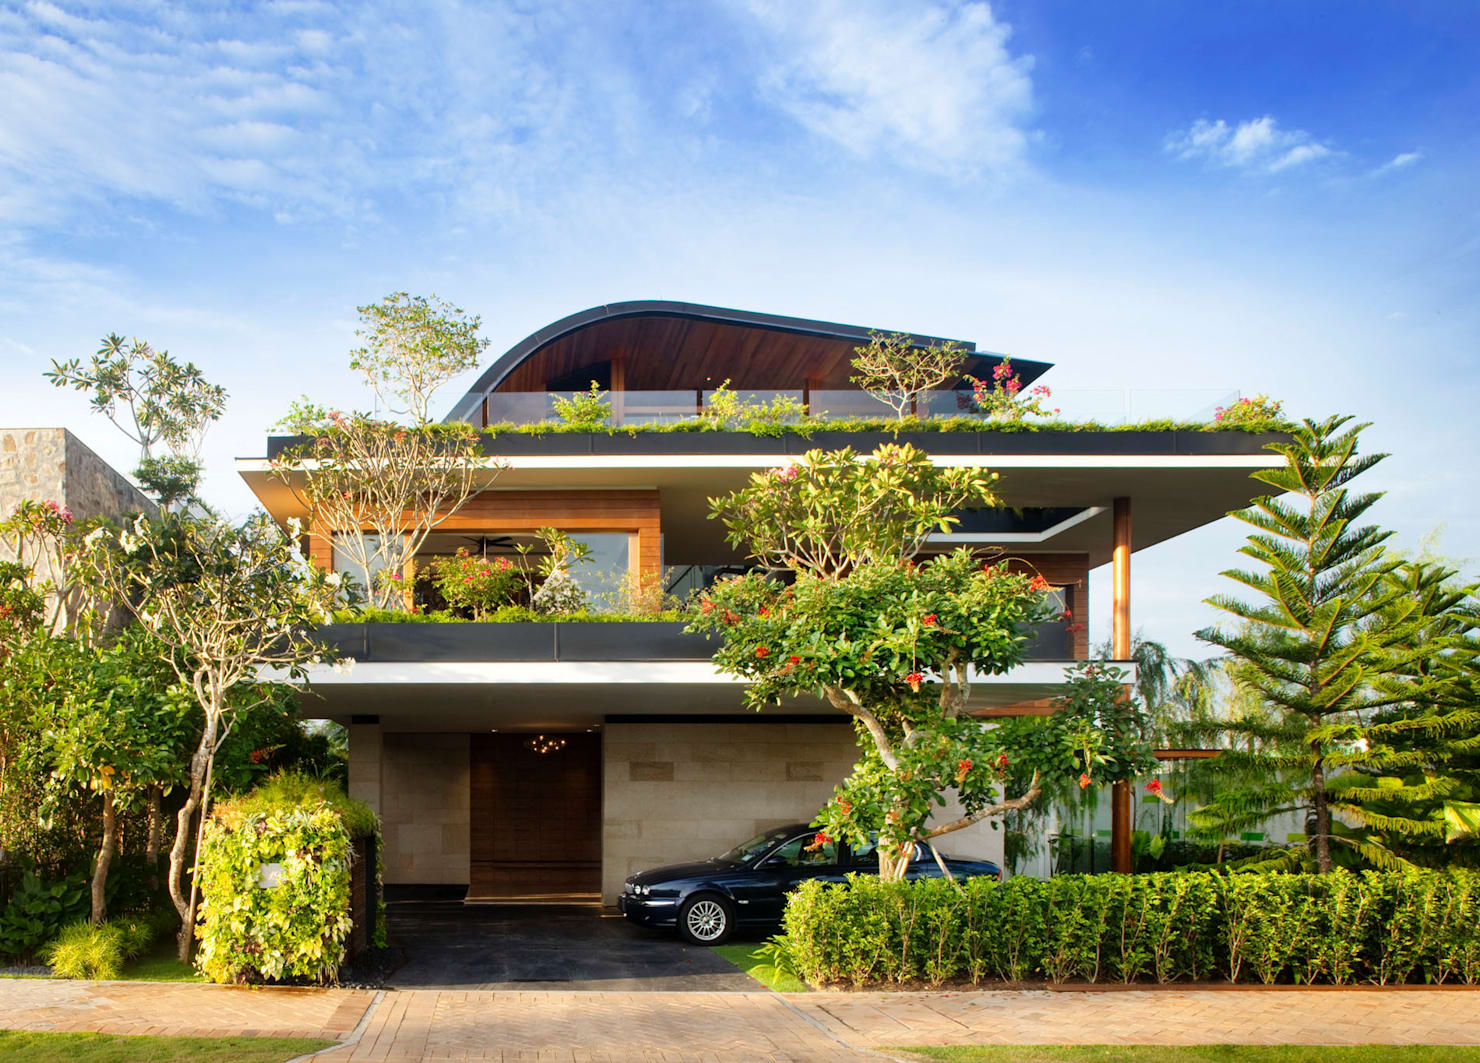 A green Singapore home takes gardens to the next level